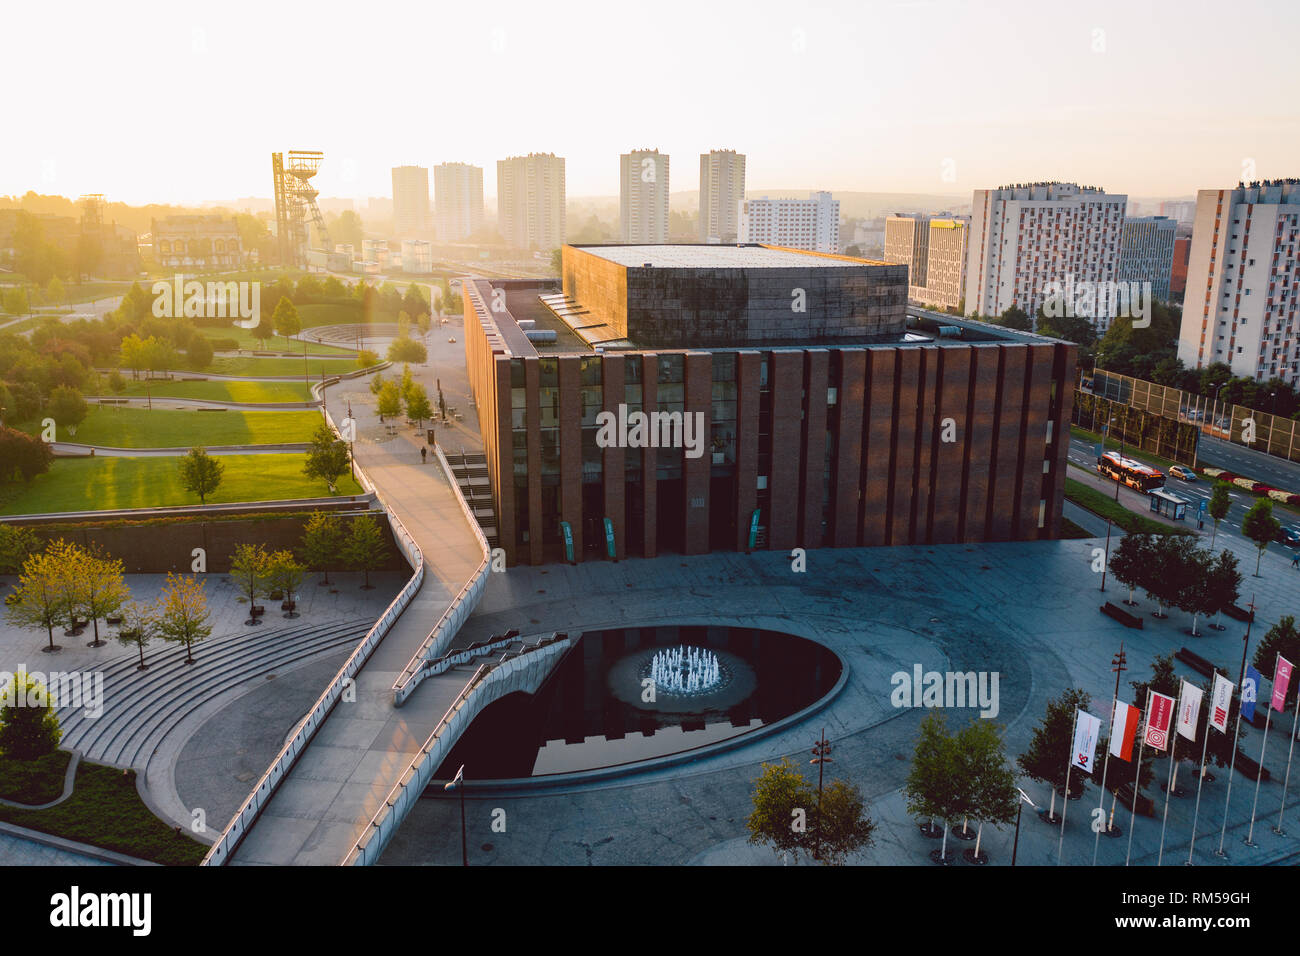 KATOWICE, POLAND - SEPTEMBER 18, 2018: Modern concert hall of The National Orchestra of Polish Radio located in a modern district of Katowice. Stock Photo